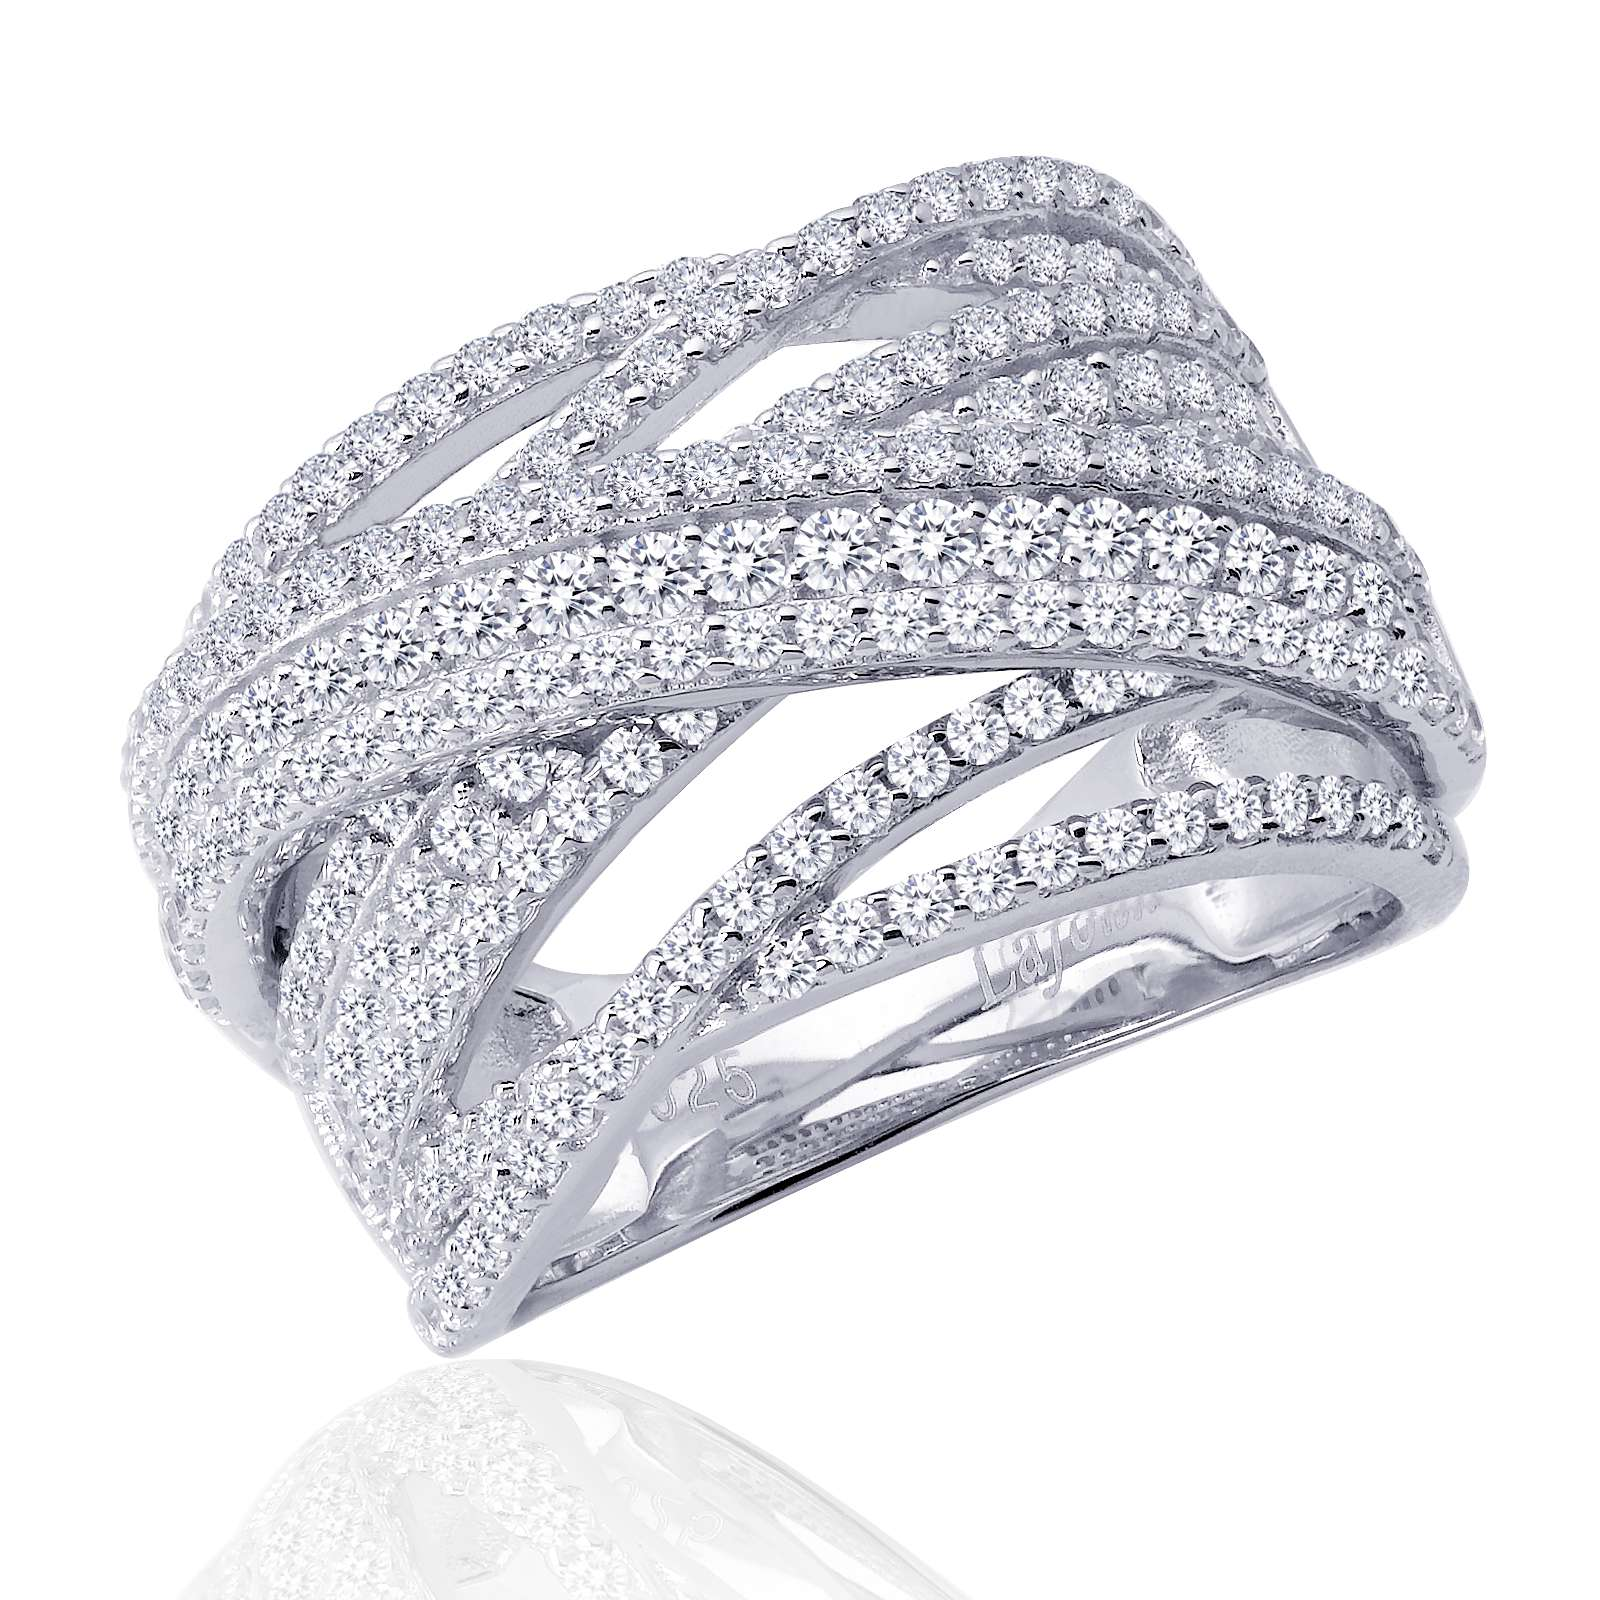 Pave Glam Simulated Diamond Platinum Bonded Ring by Lafonn